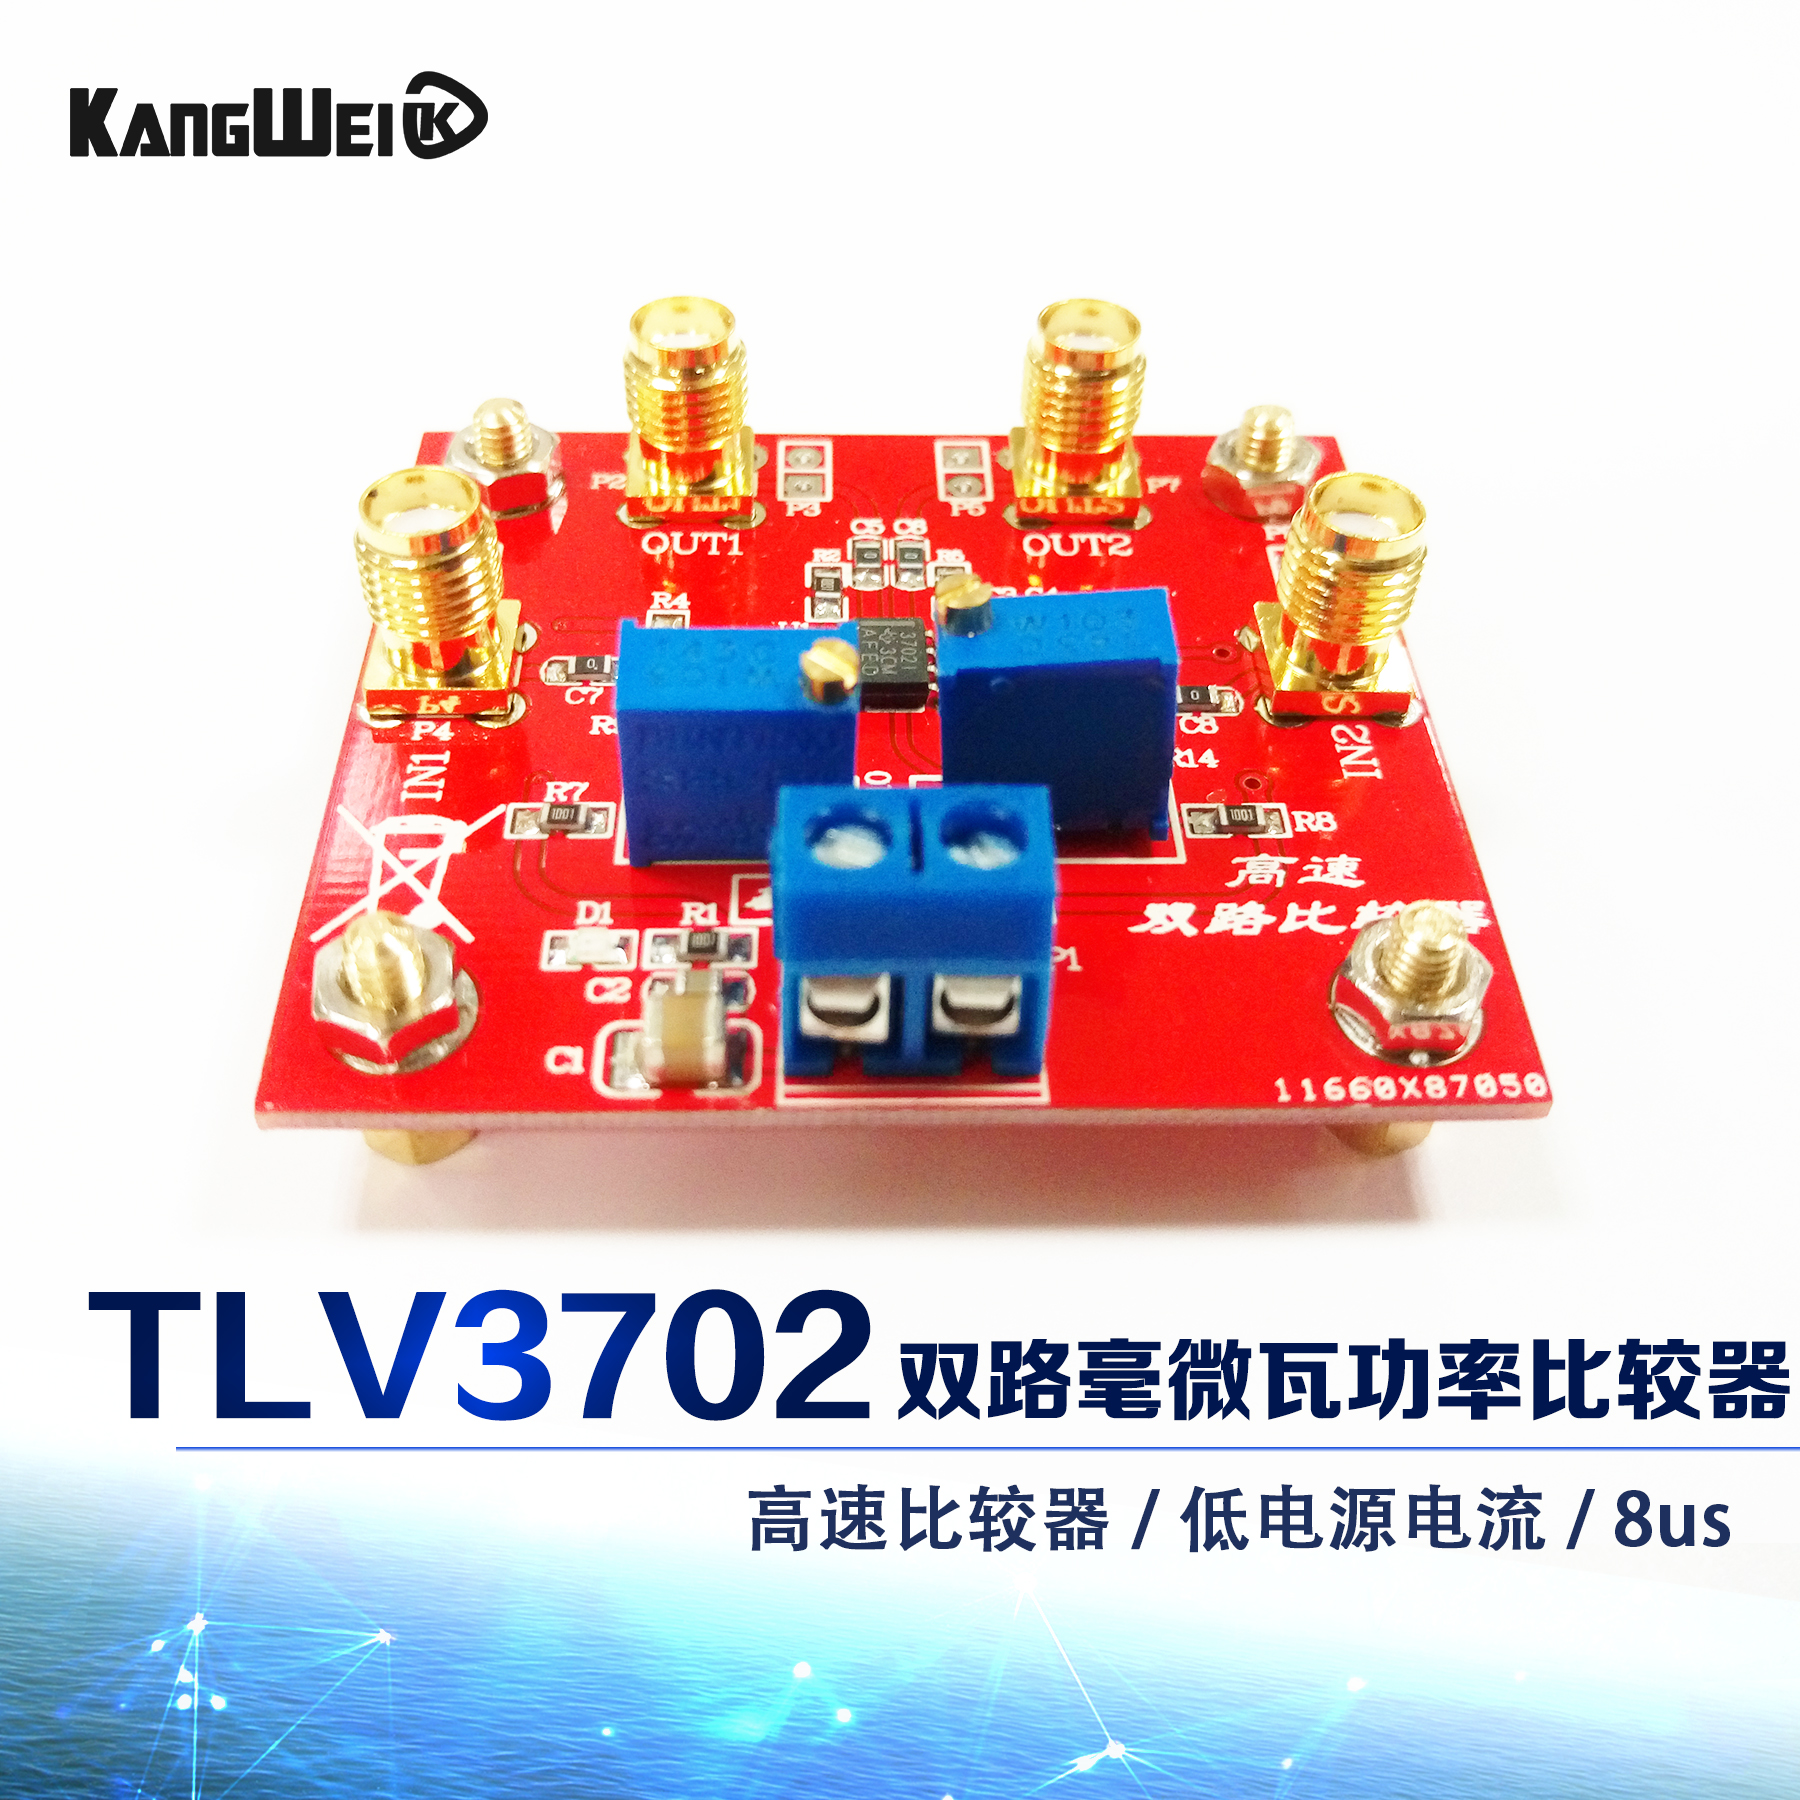 The TLV3702 Module Dual Nanowatt Power Comparator High Speed Comparator Low Supply Current 8us shell spirax s3 tlv